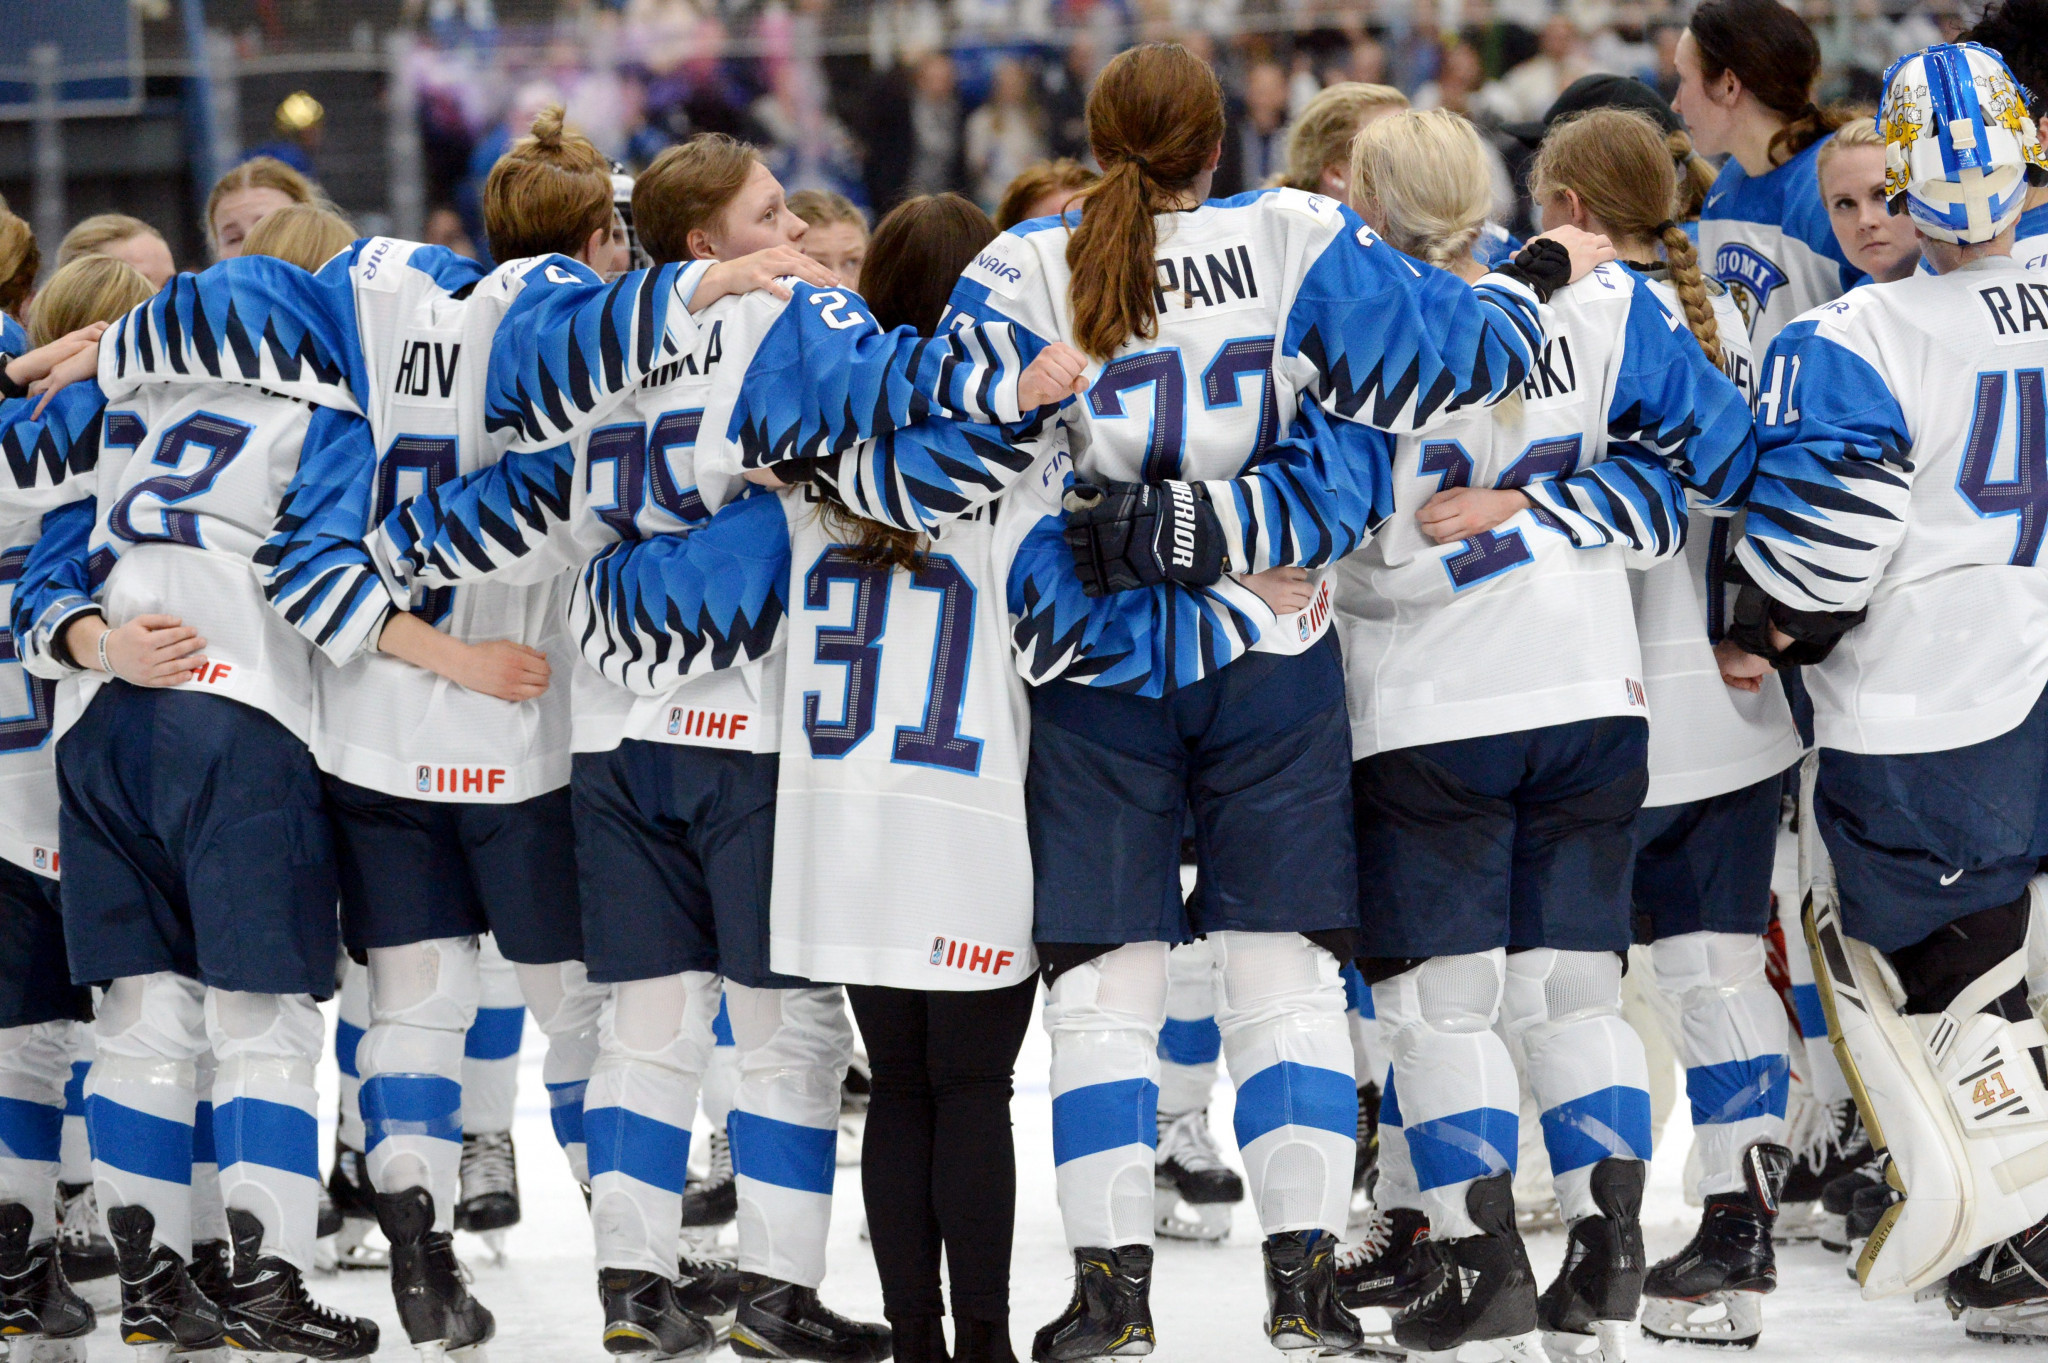 Finland move up to third in IIHF Women's World Championship group A, while Czechs top group B